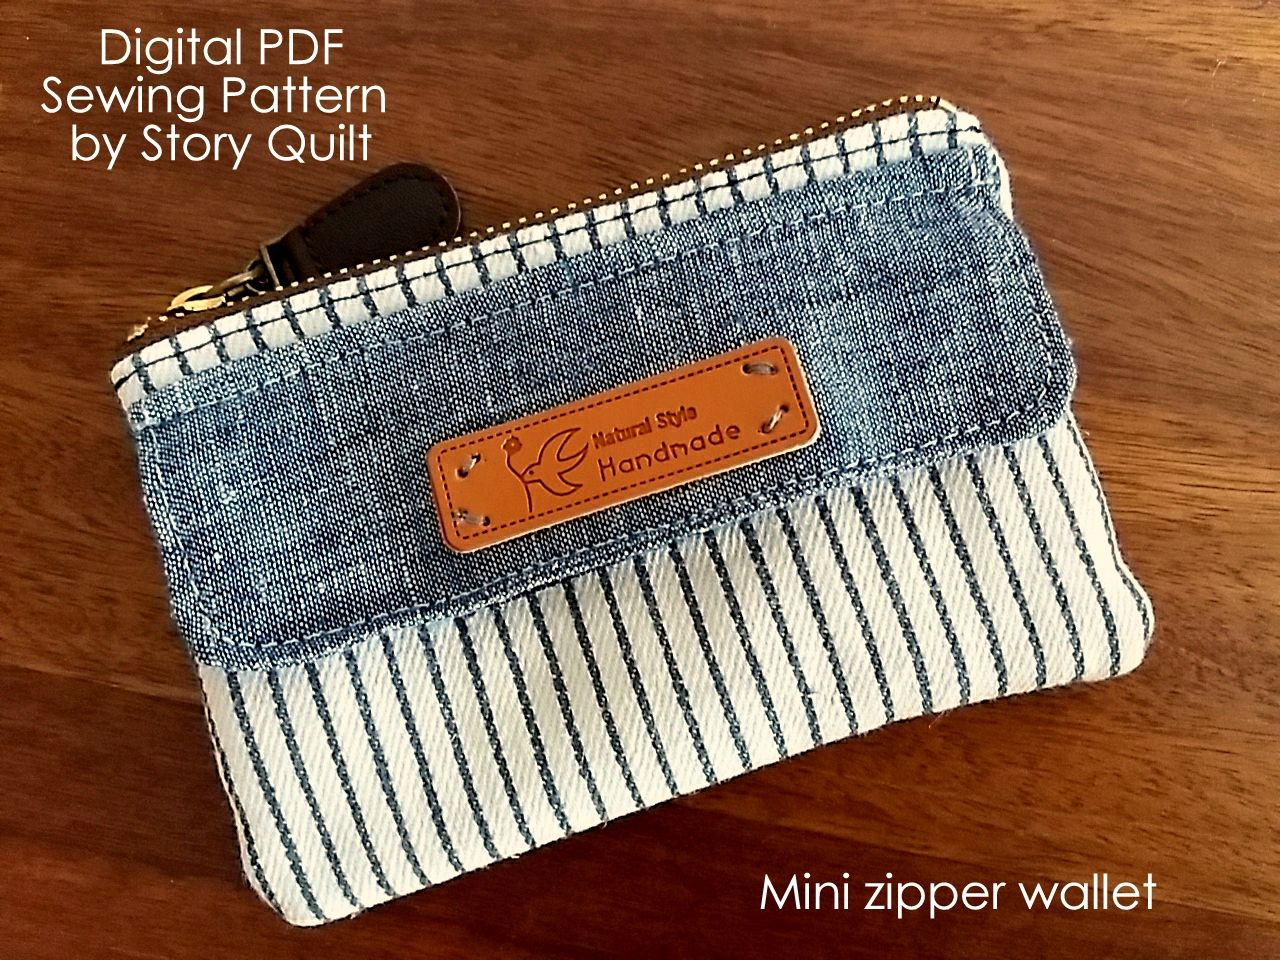 Quick and easy bag pattern purse sewing pattern wallet sewing quick and easy bag pattern purse sewing pattern wallet sewing pattern zip pouch zipper pouch bag pattern wallet tutorial jeuxipadfo Choice Image